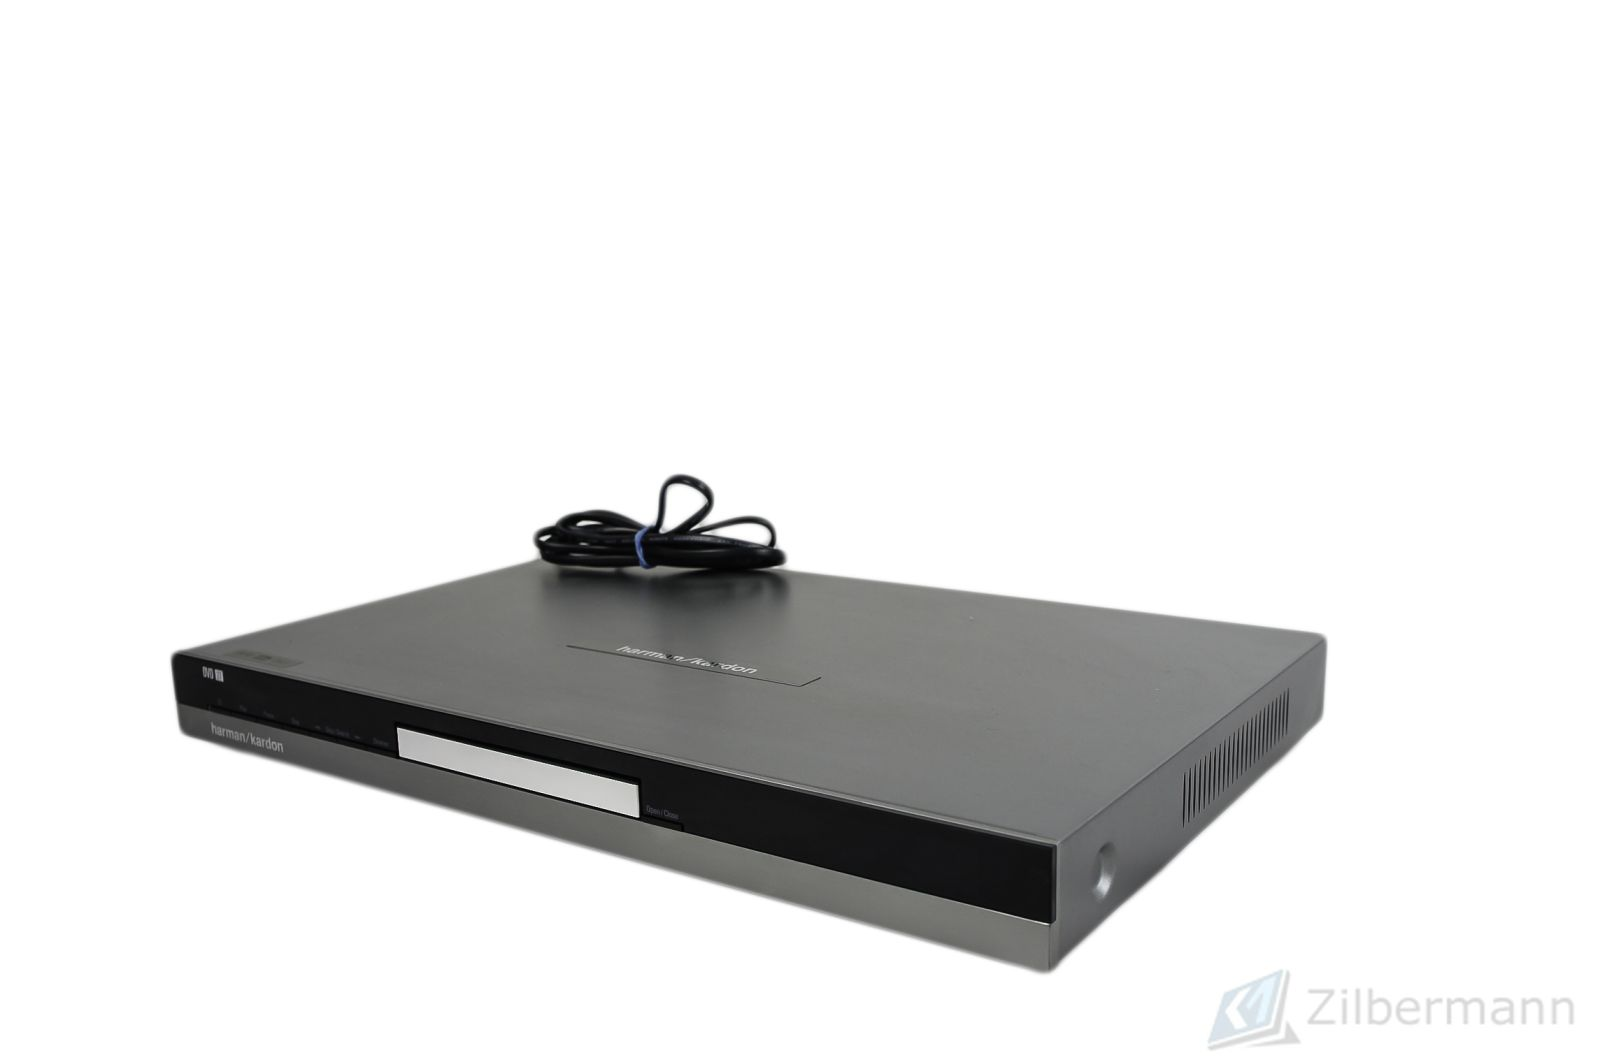 Harman_Kardon_DVD_27_DVD_Player_11